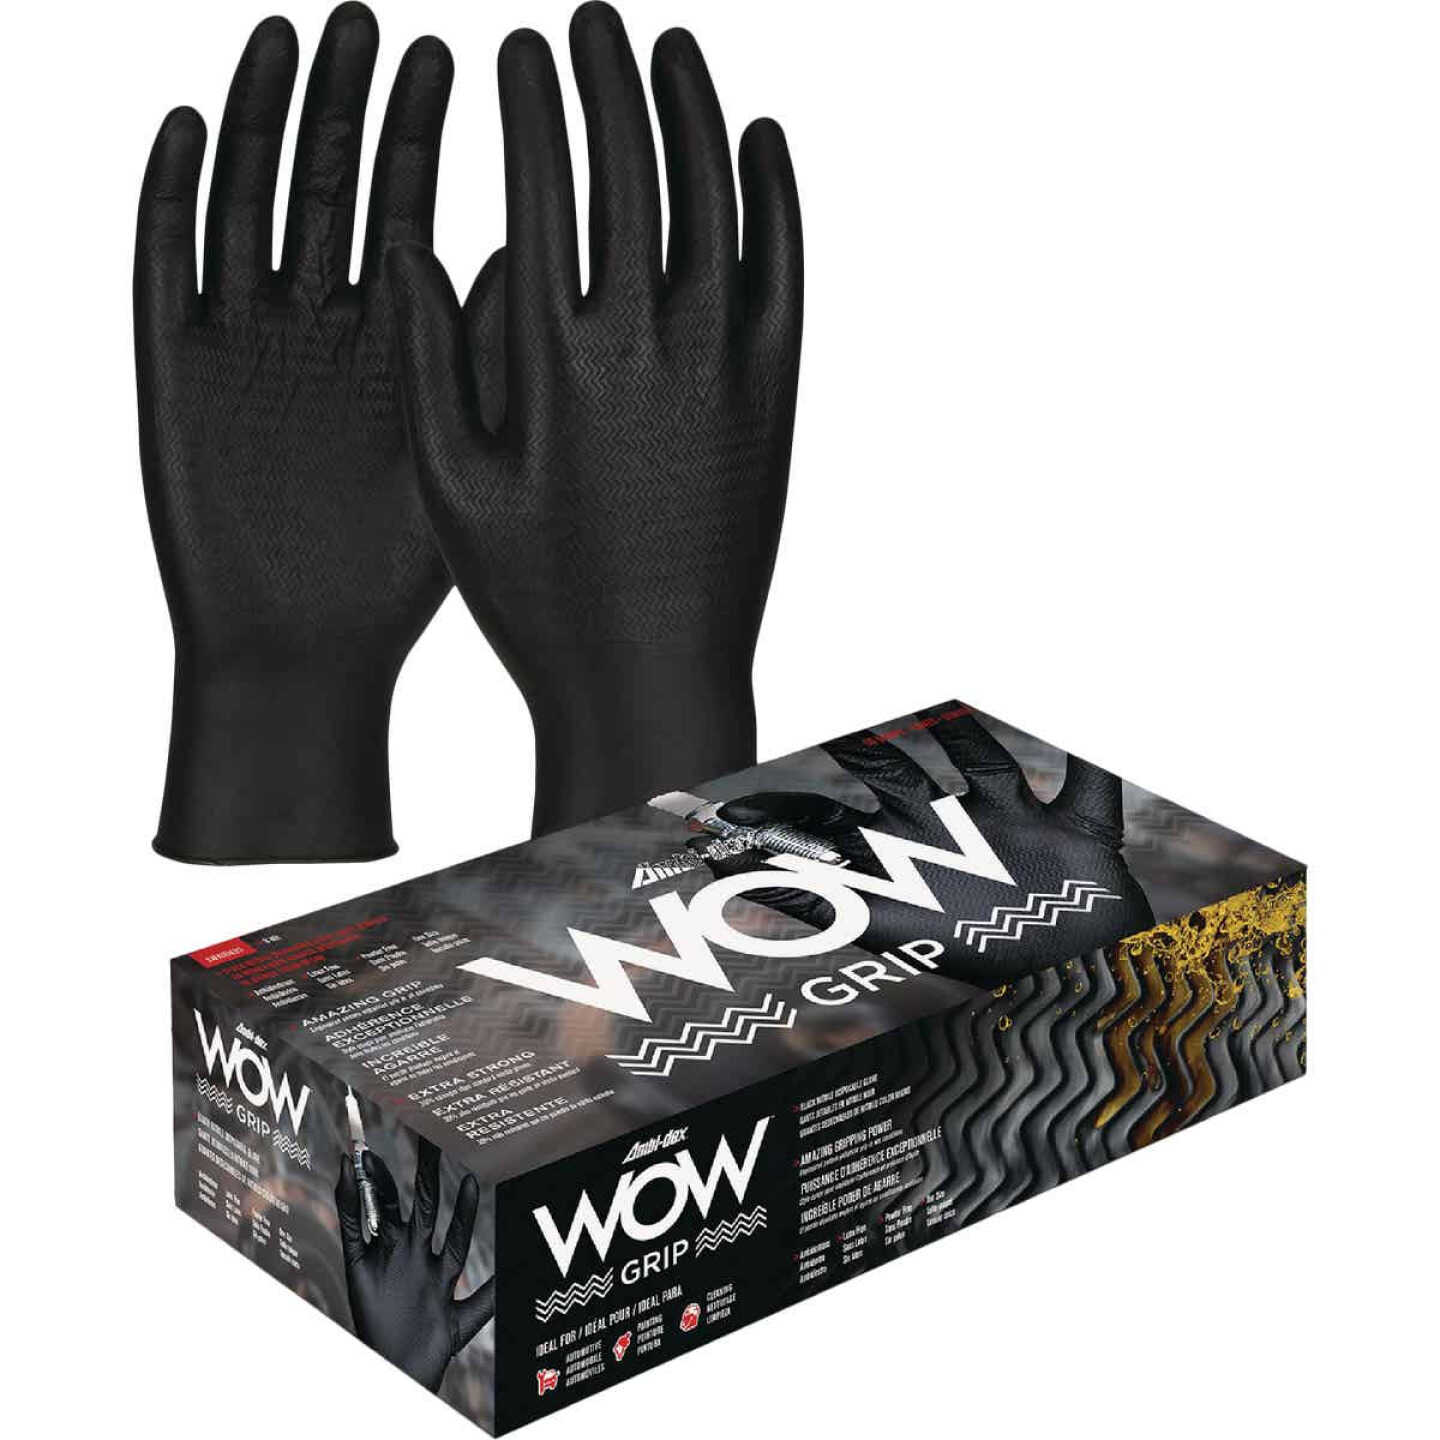 Safety Works Ambi-dex WOW Grip Large Nitrile Disposable Automotive Glove (100-Pack) Image 1